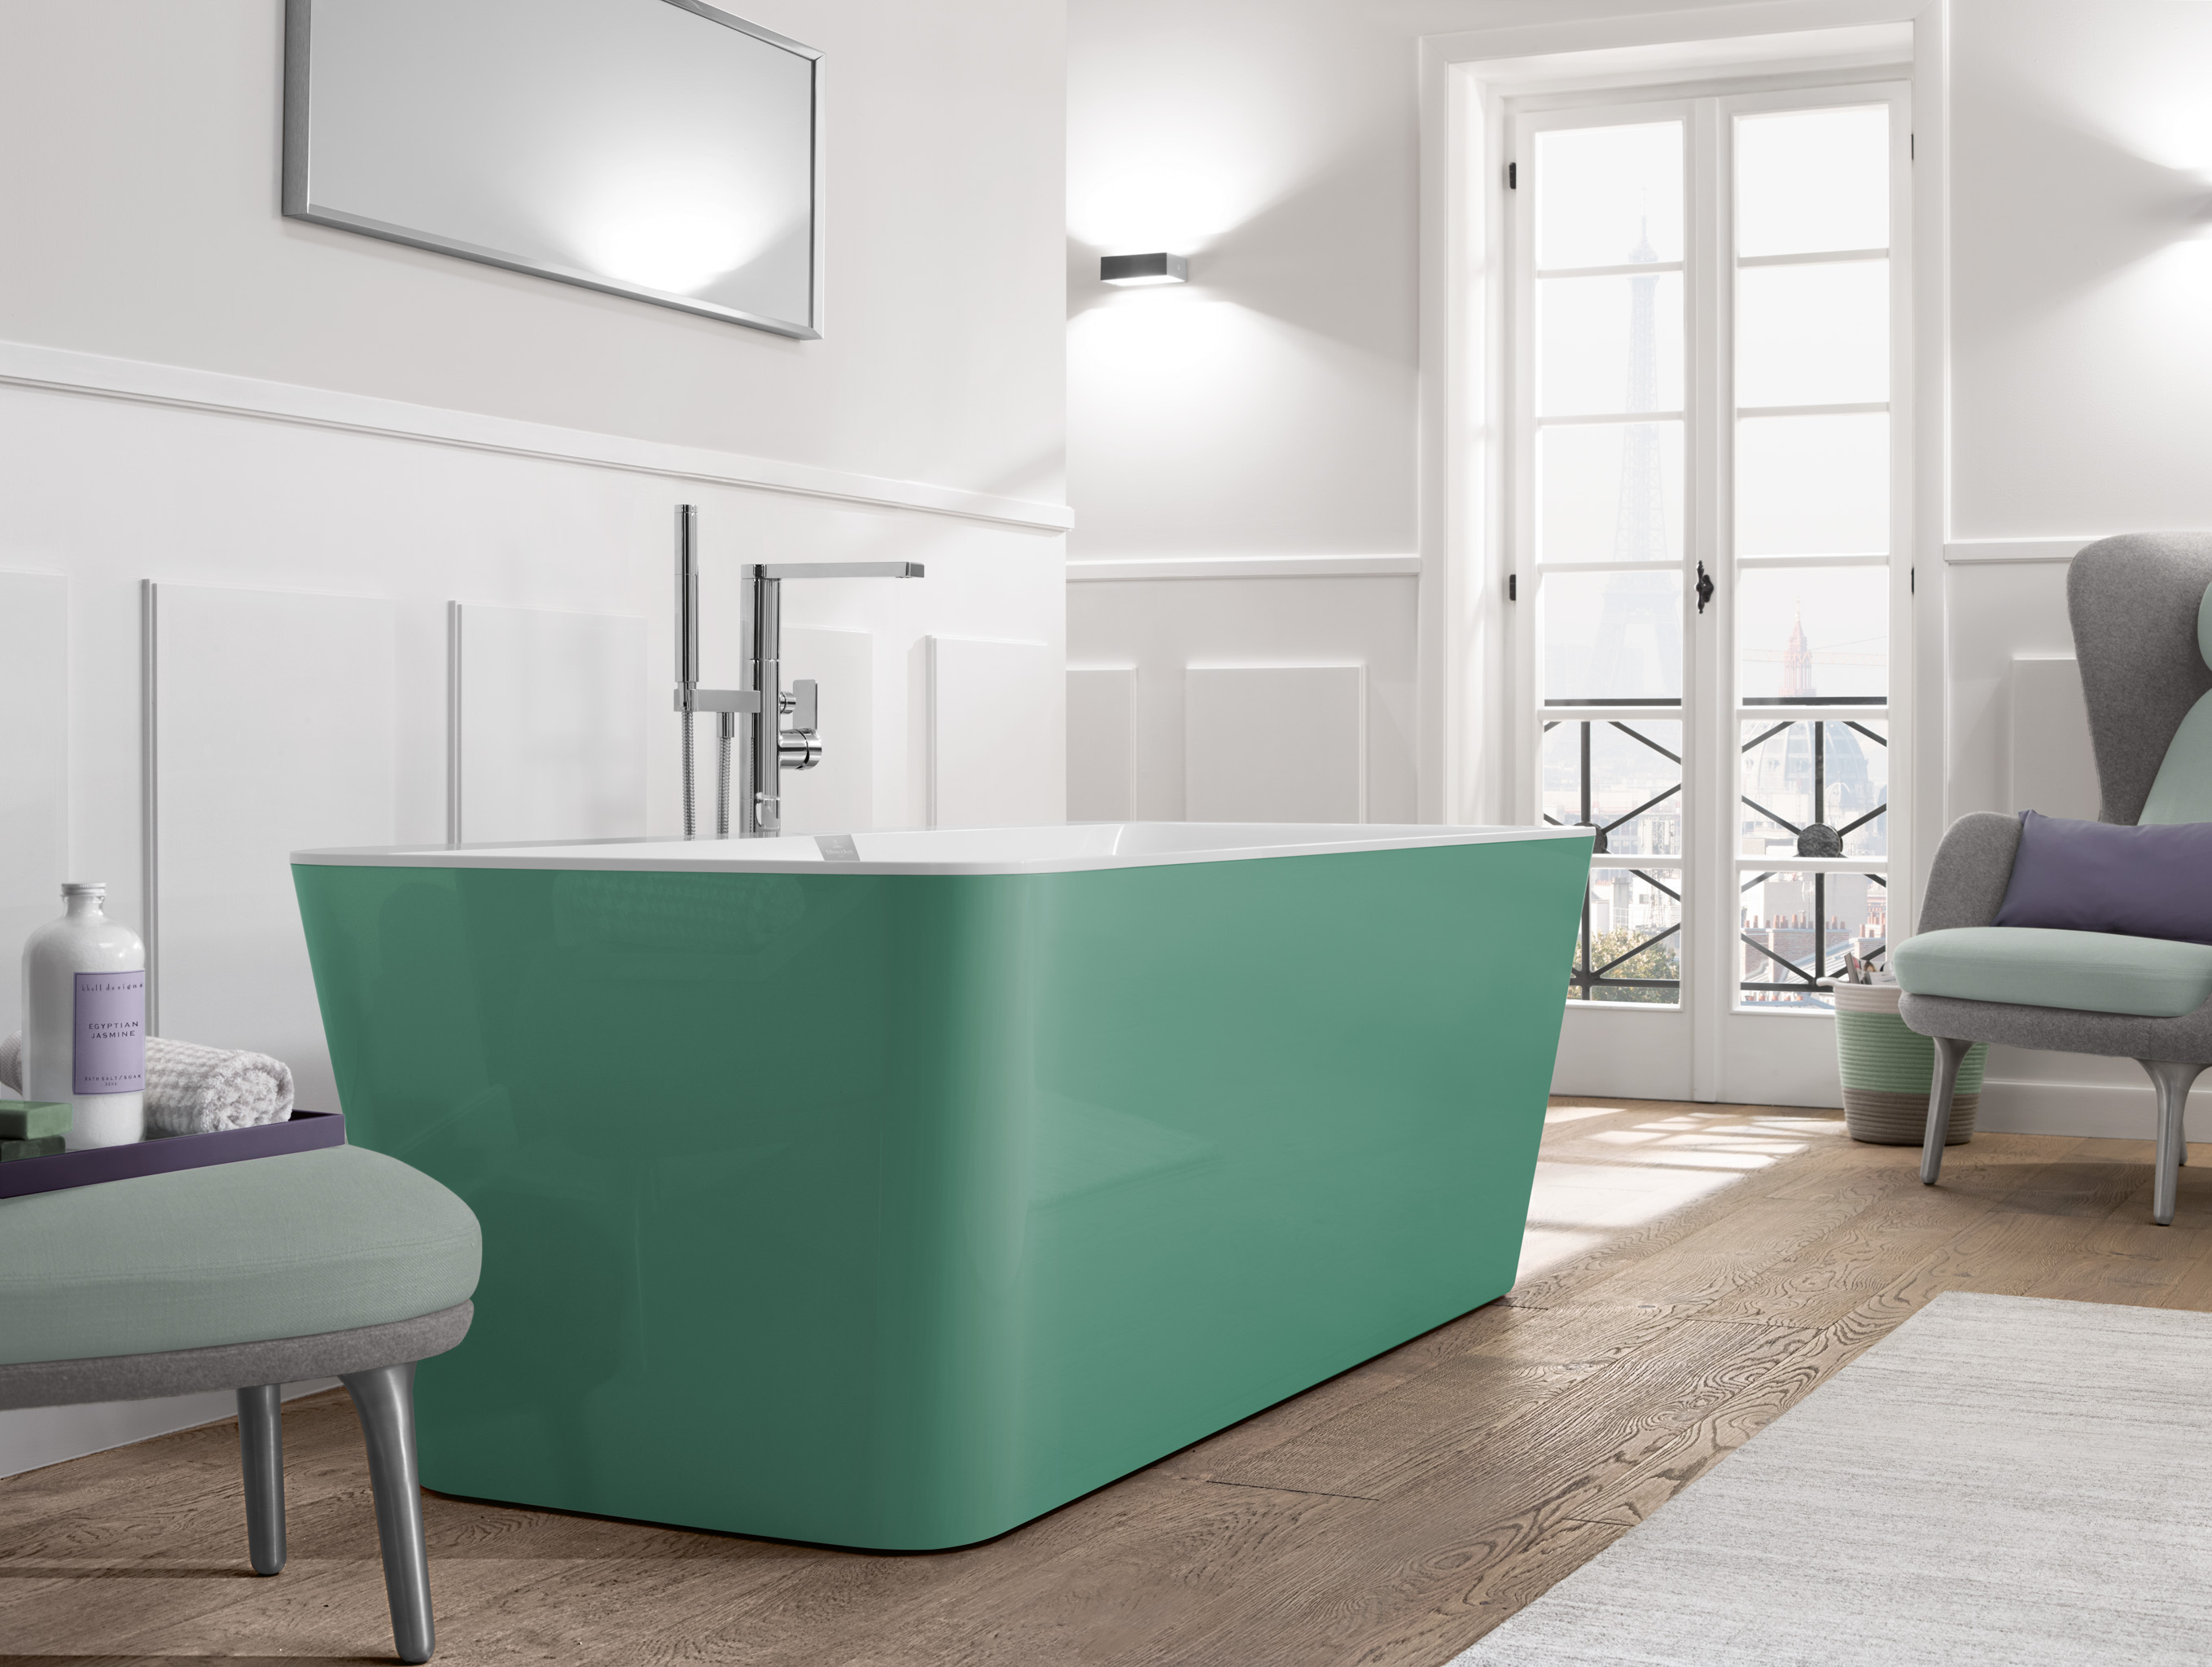 Villeroy and bock Artis color bathroom. Inject Colourful Elegance in your Bathroom with Villeroy   Boch